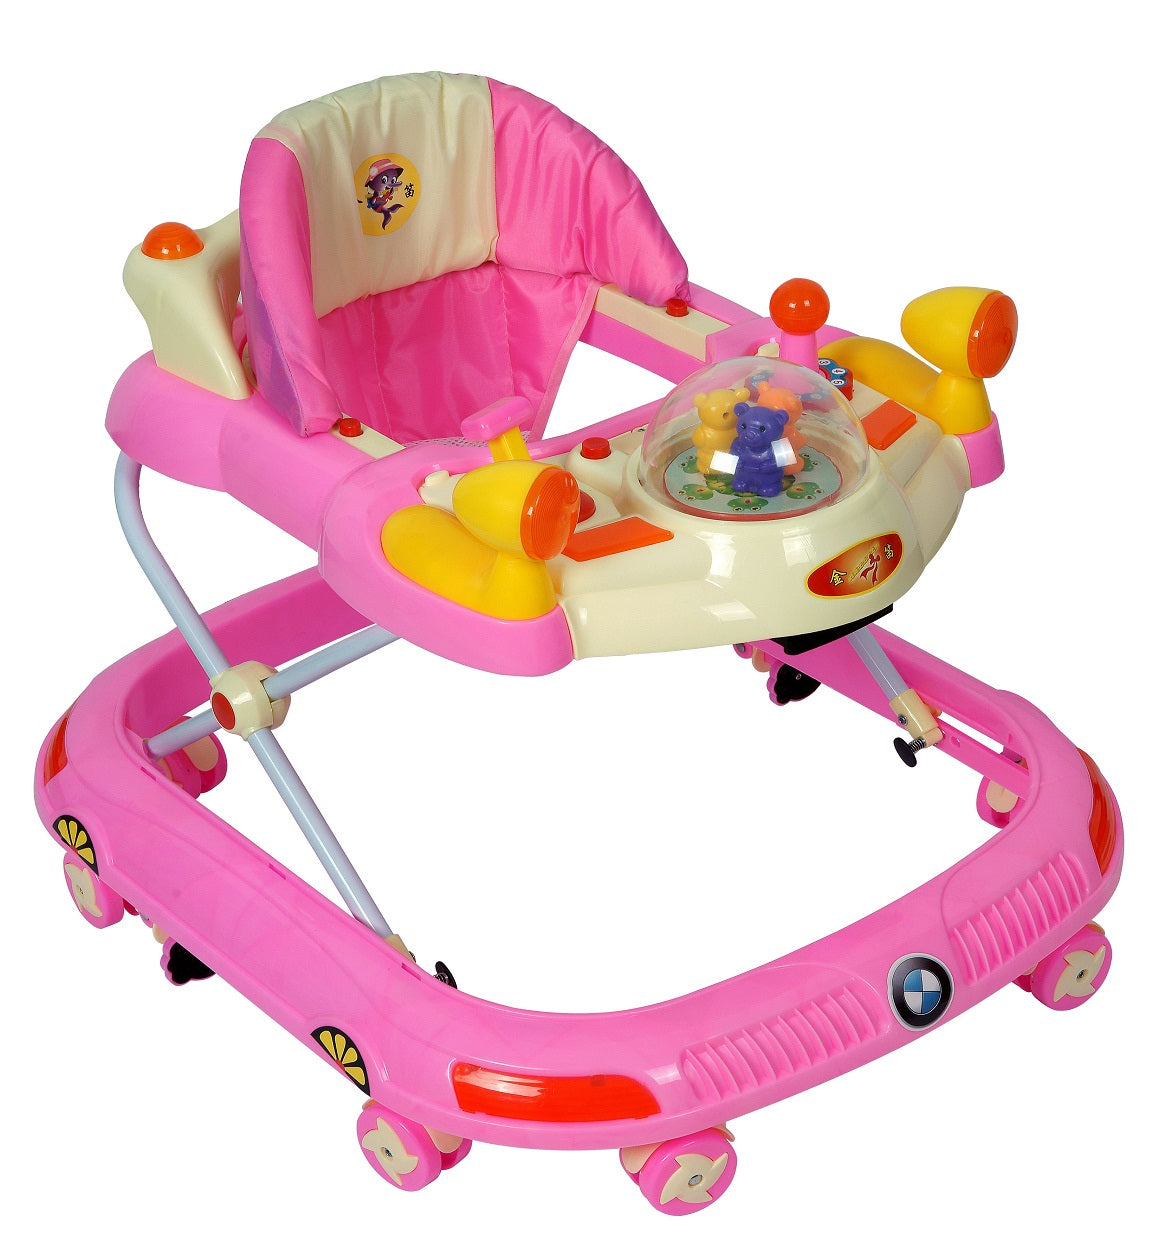 Toy, What Baby Activity Walkers Can Do For Your Child